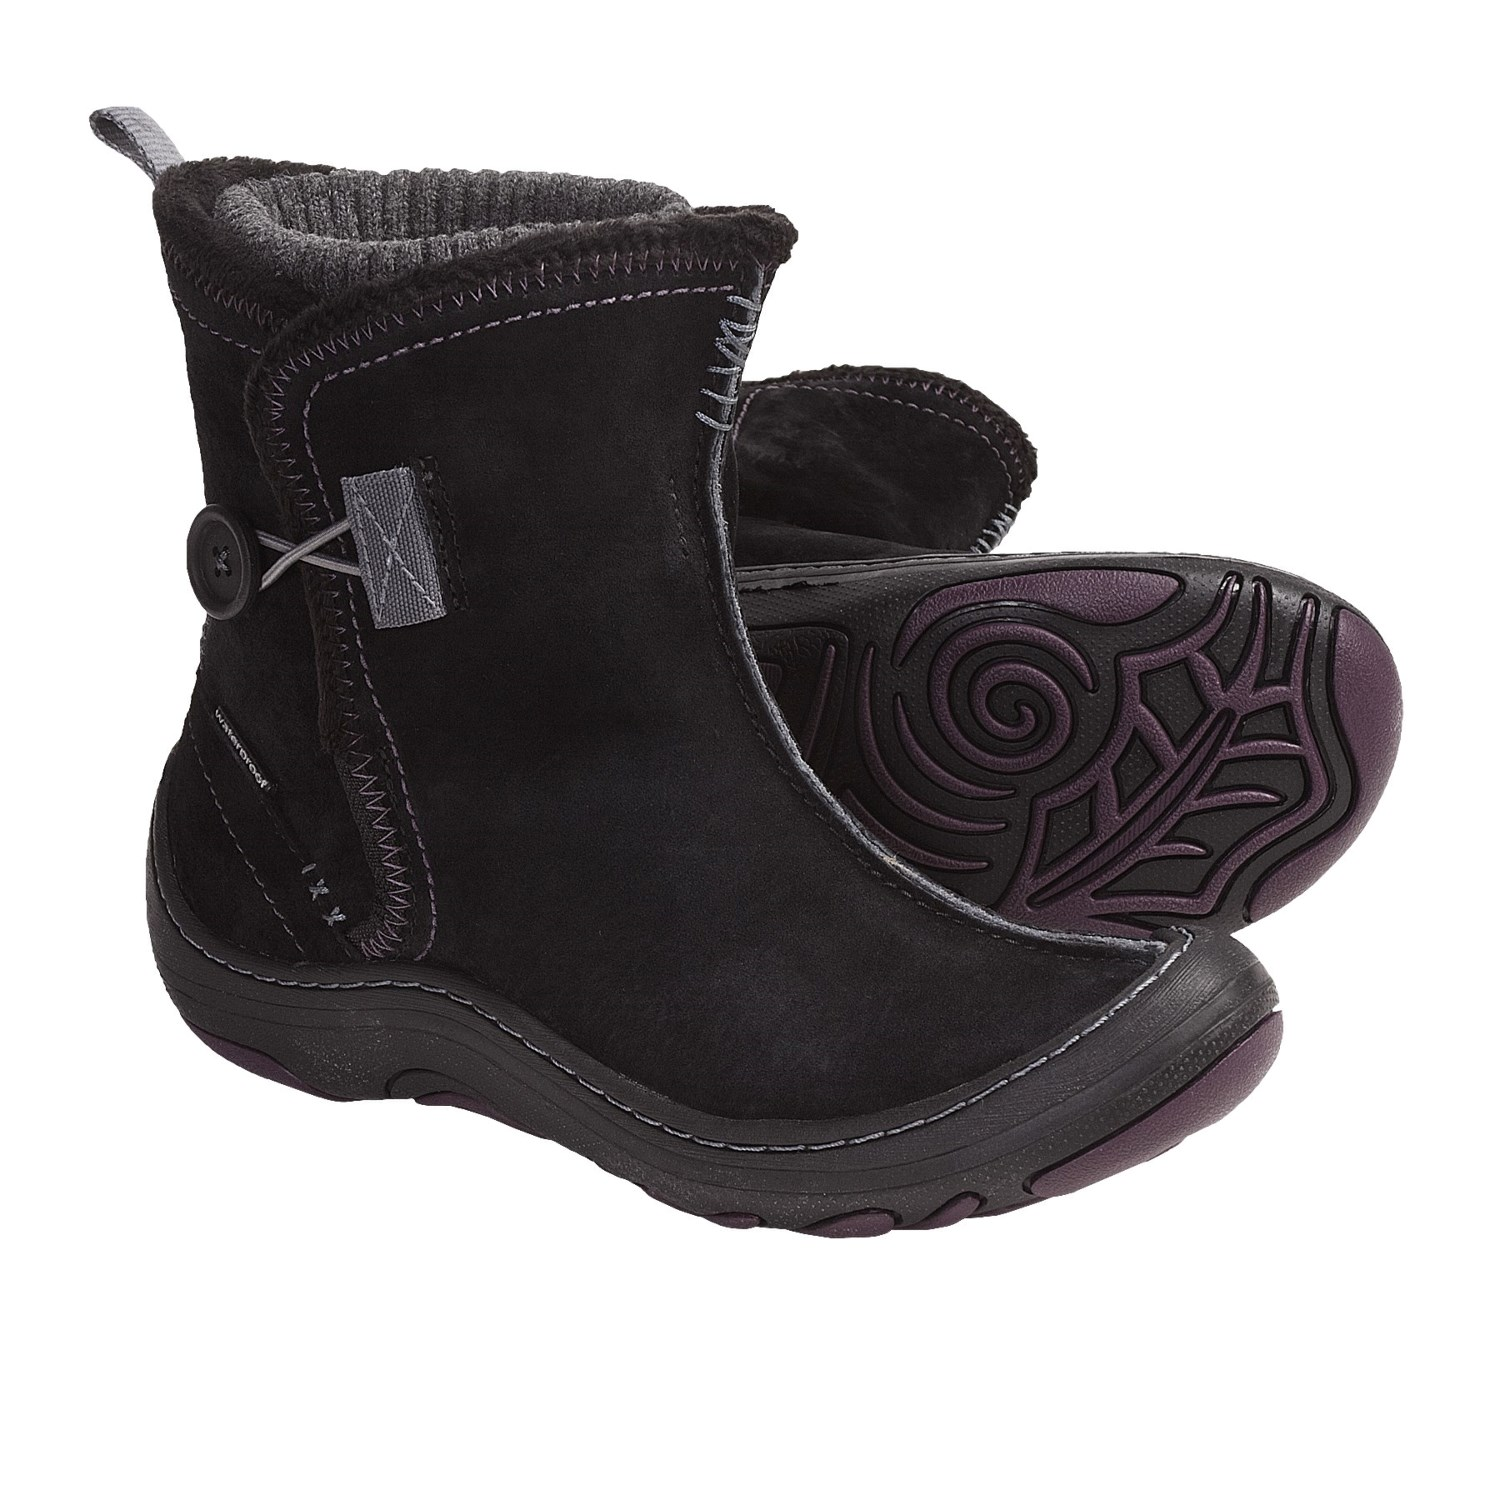 Privo by Clarks Hayseed Ankle Boots - Waterproof Suede (For Women) in